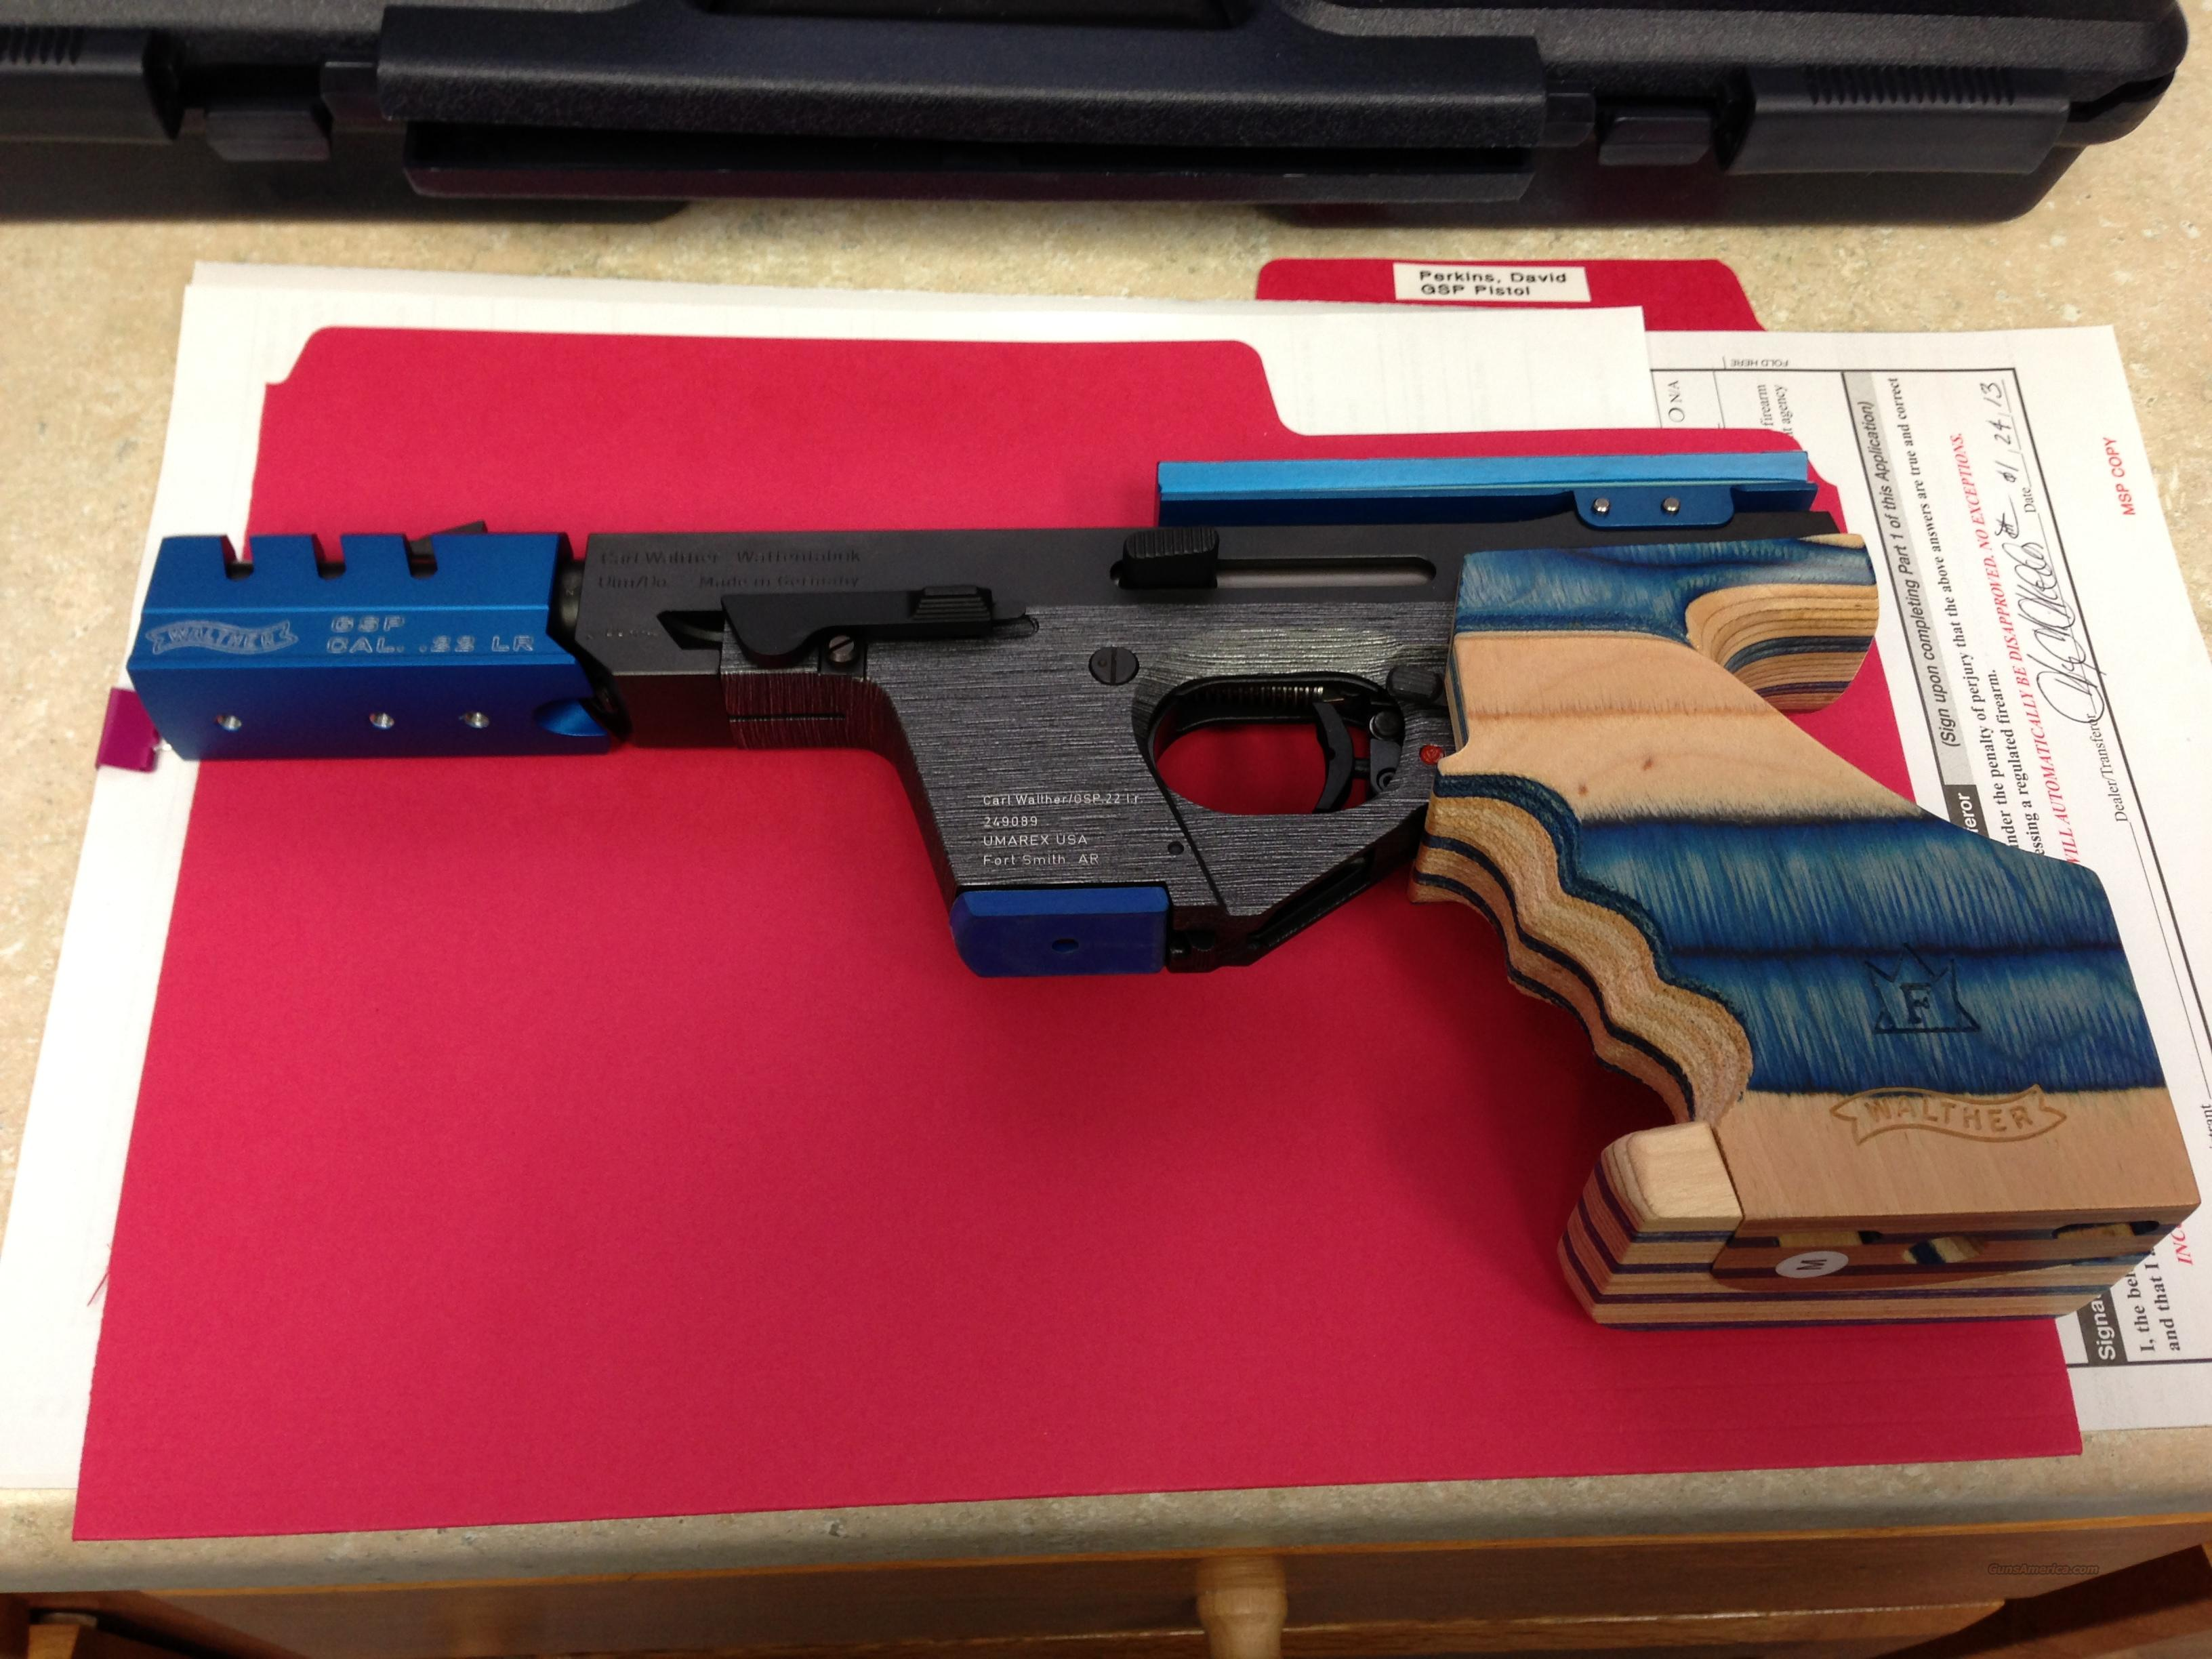 walther gsp expert 22cal match pistol for sale walther mp5 22 manual walther gsp 22 manual